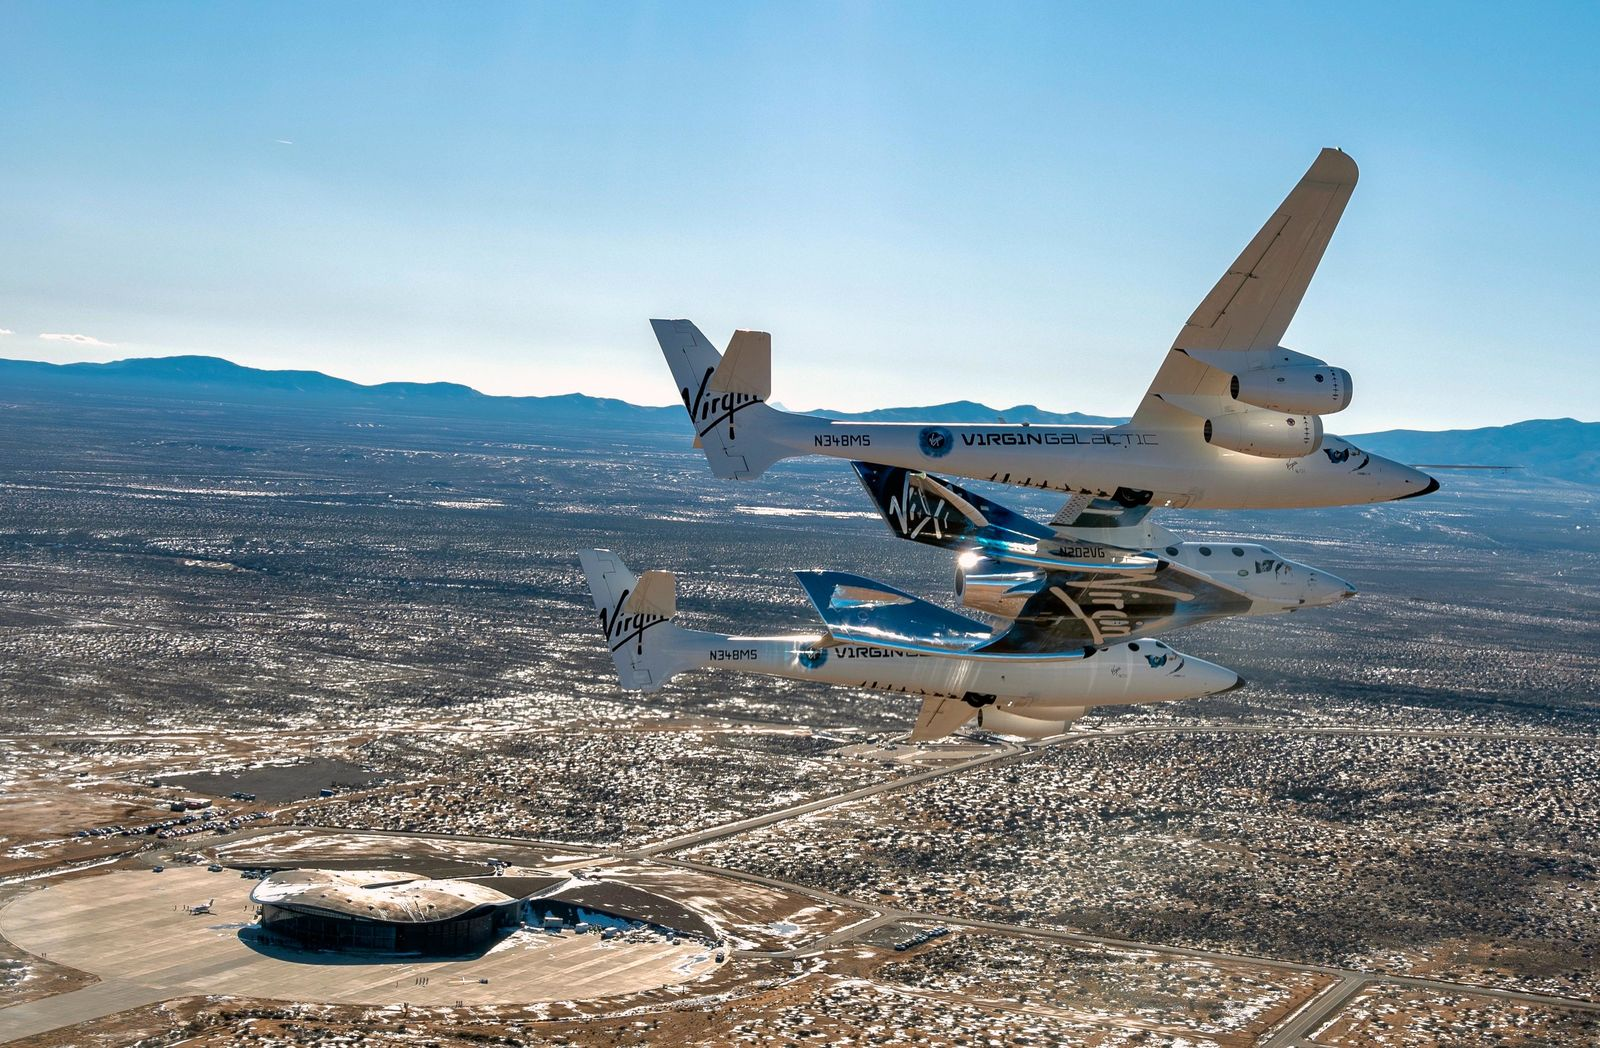 FILE - This Thursday, Feb. 13, 2020, file photo provided by Virgin Galactic shows the Virgin Galactic's VSS Unity flying over Spaceport America in Truth or Consequences, N.M. Virgin Galactic has received nearly 8,000 online reservations of interest since its first successful test flight into space 14 months ago, the company said Tuesday, Feb. 25, 2020, as it nears commercial operation and prepares to reopen ticket sales. (Virgin Galactic via AP, File)